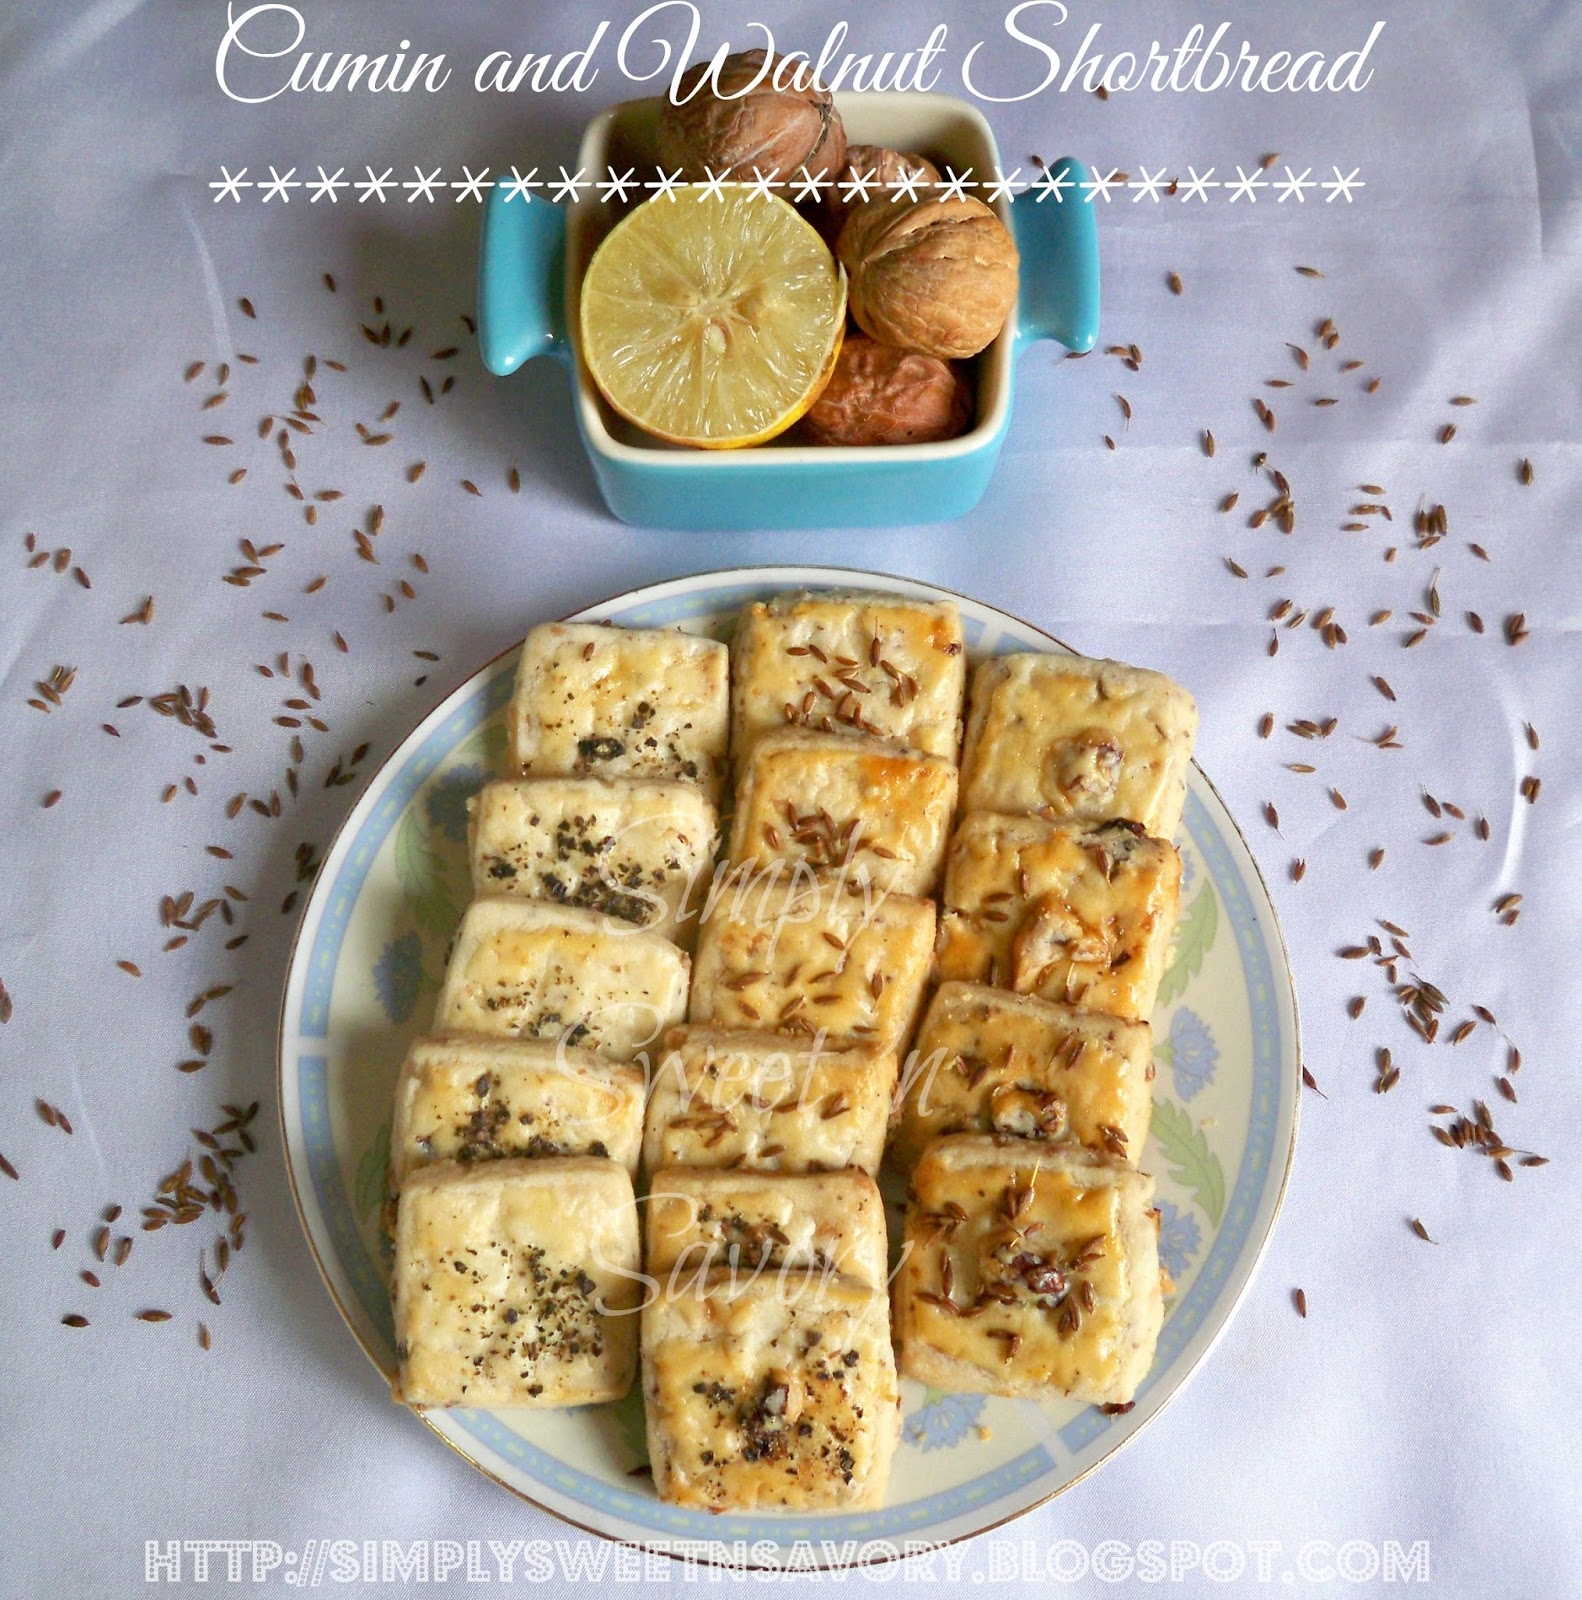 Simply Sweet 'n Savory: Cumin and Walnut Shortbread